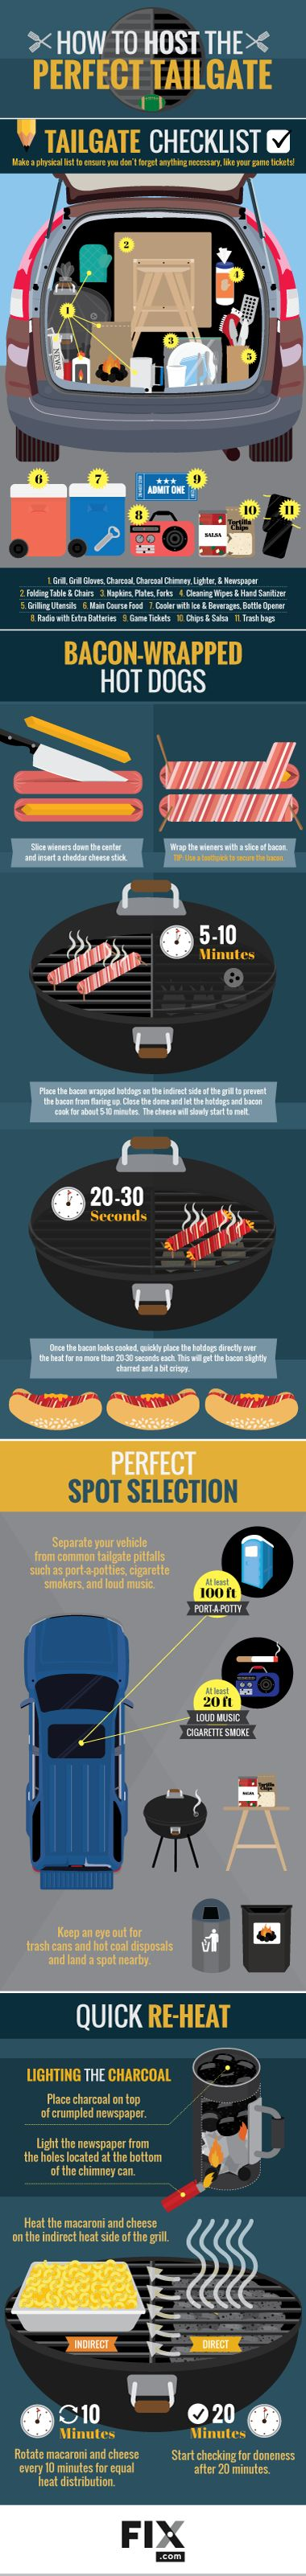 Easy Tailgate Menu for All the Action in the Parking Lot #Infographics